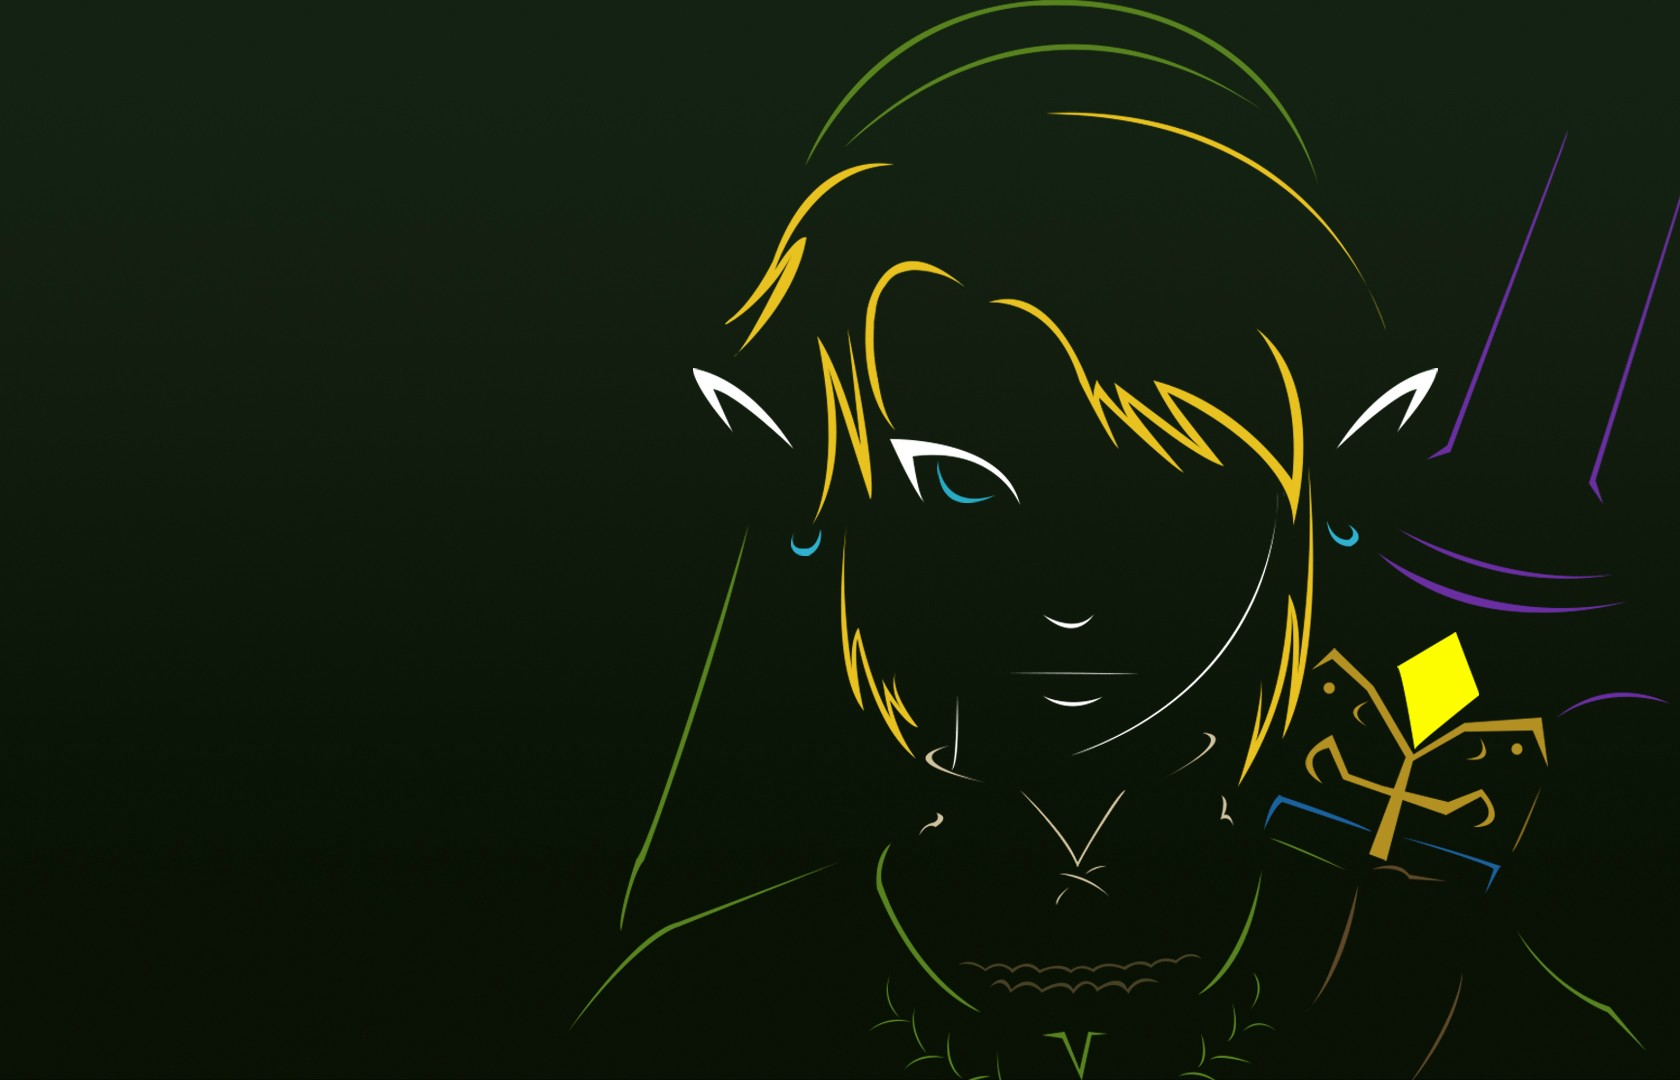 214 The Legend Of Zelda HD Wallpapers | Backgrounds - Wallpaper Abyss